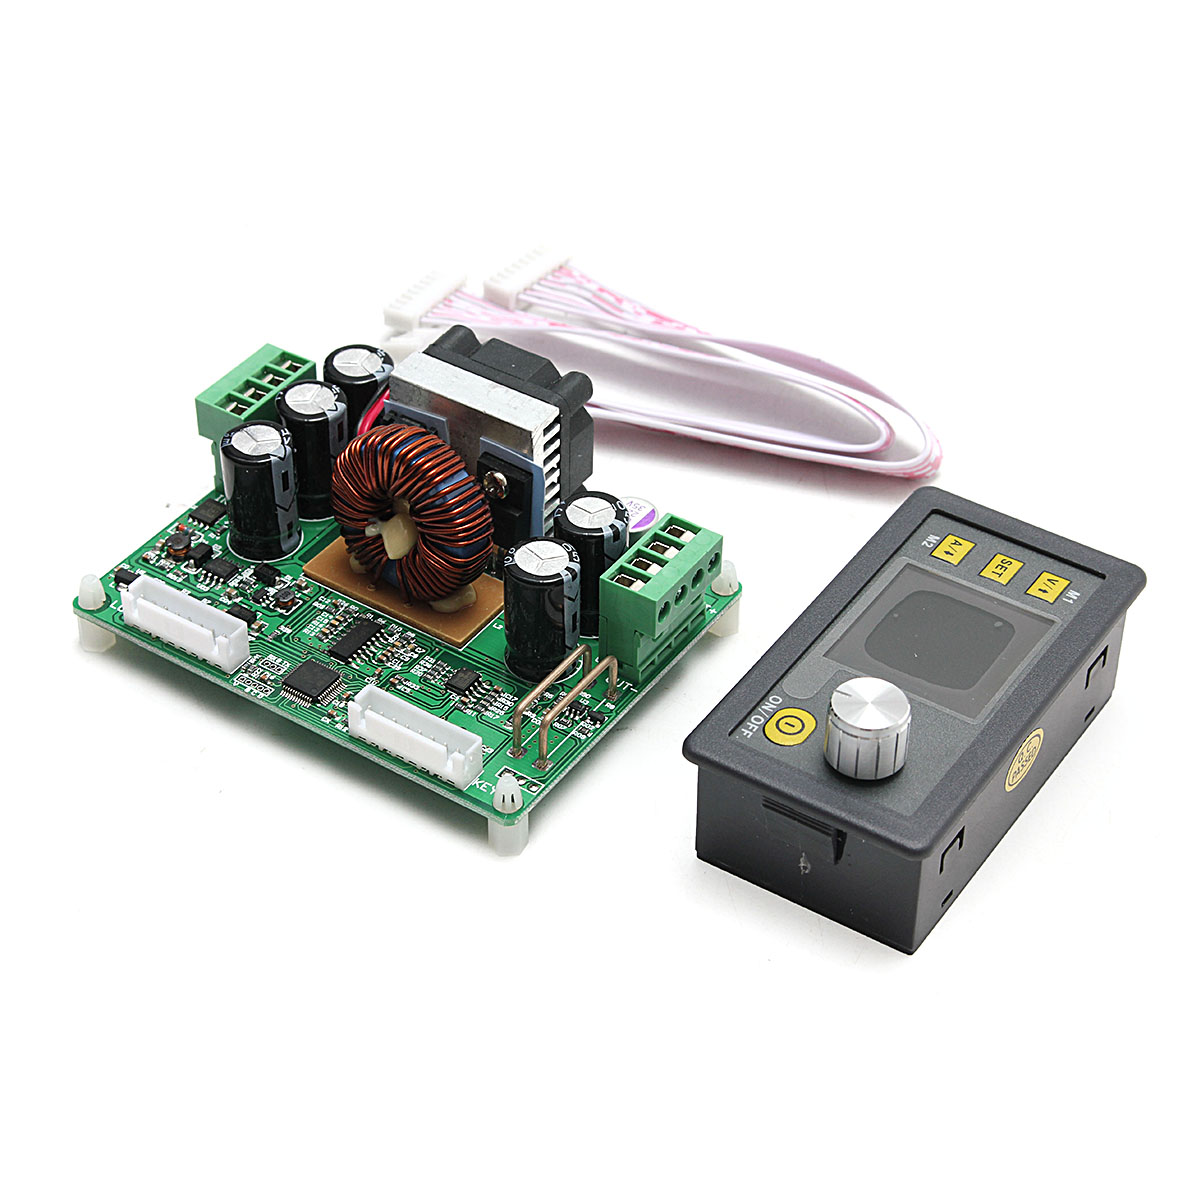 DPS3012 Programmable Constant Voltage Current Step Down Power Supply Module